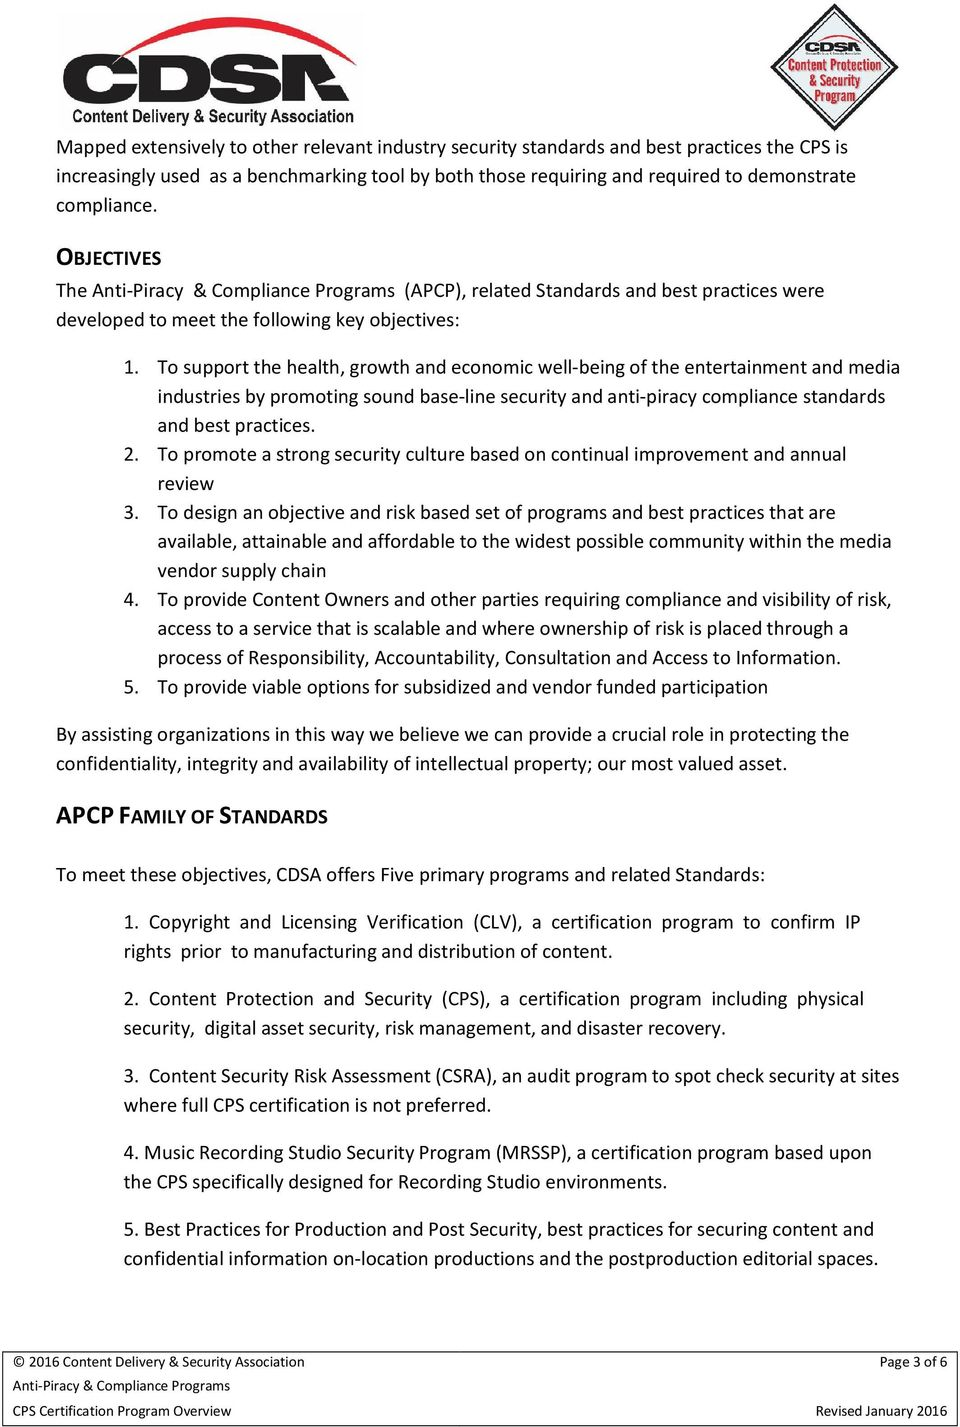 Content Protection Security Cps Certification Program Overview Pdf